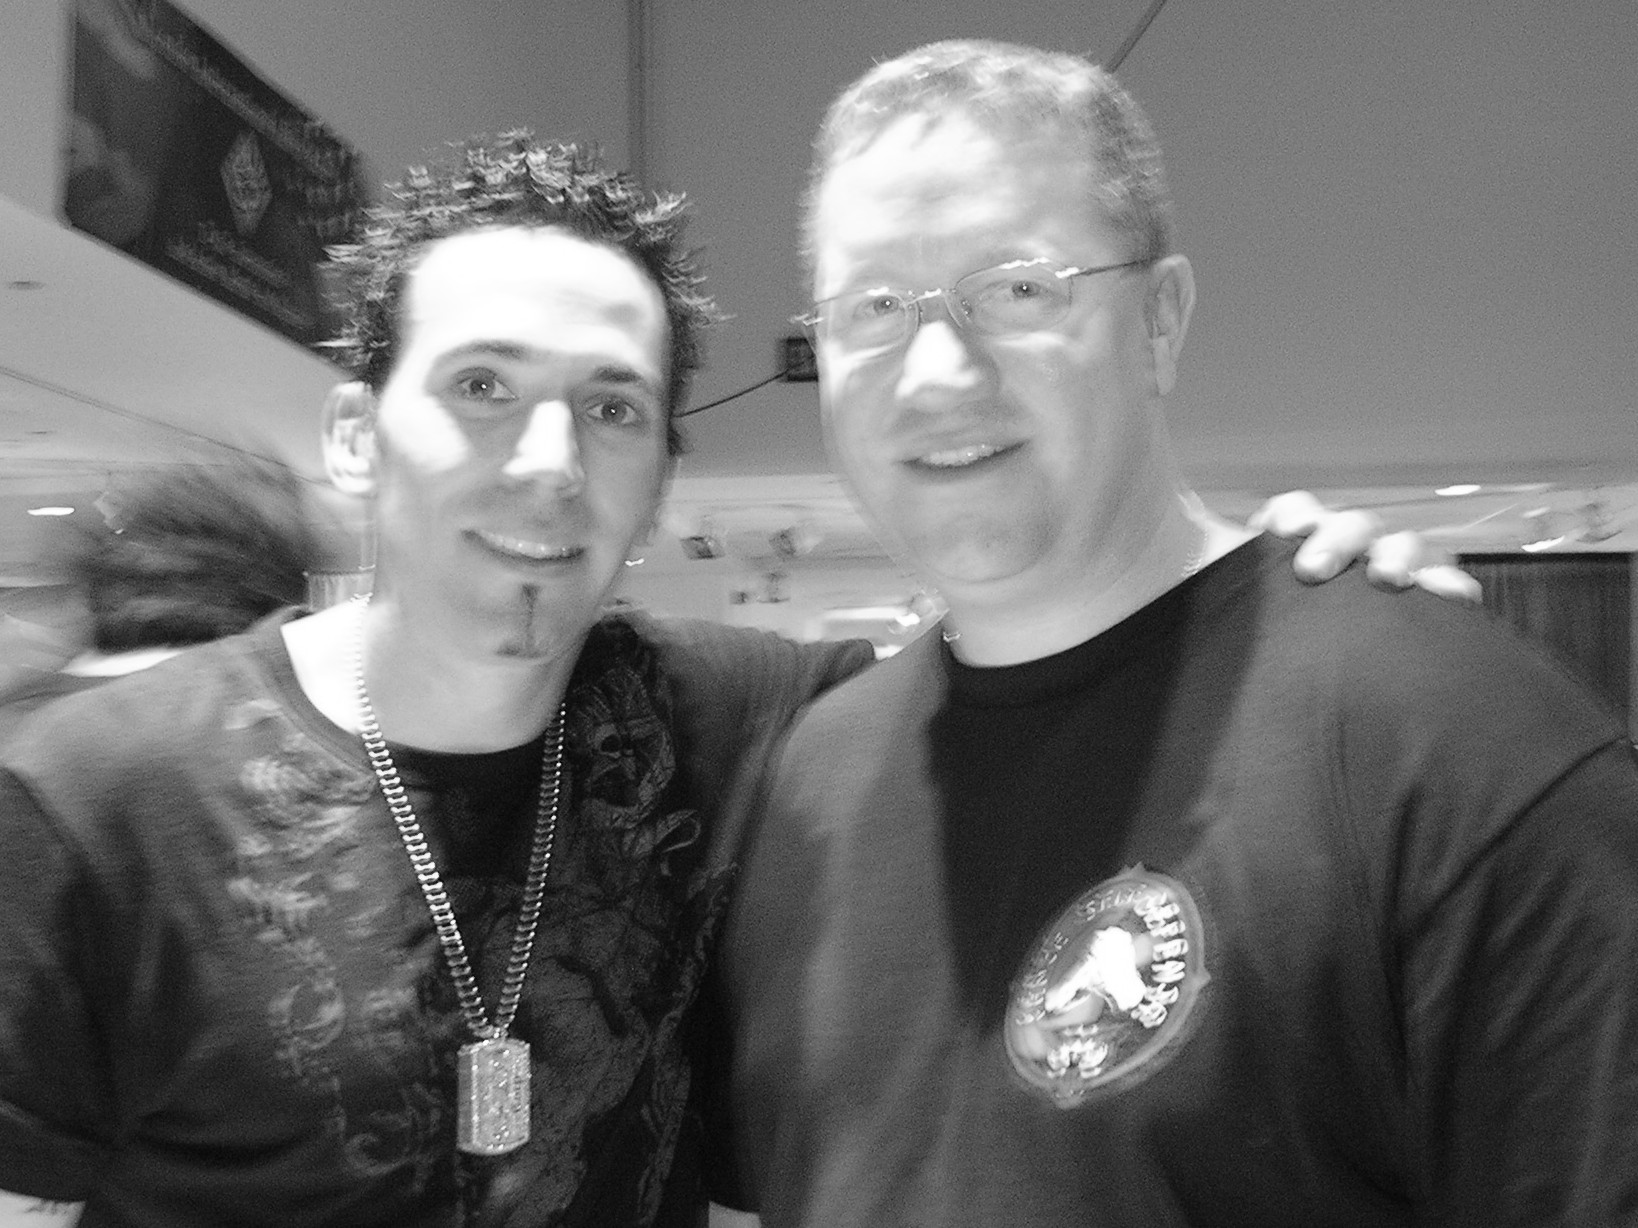 Jason David Frank and Sensei KP